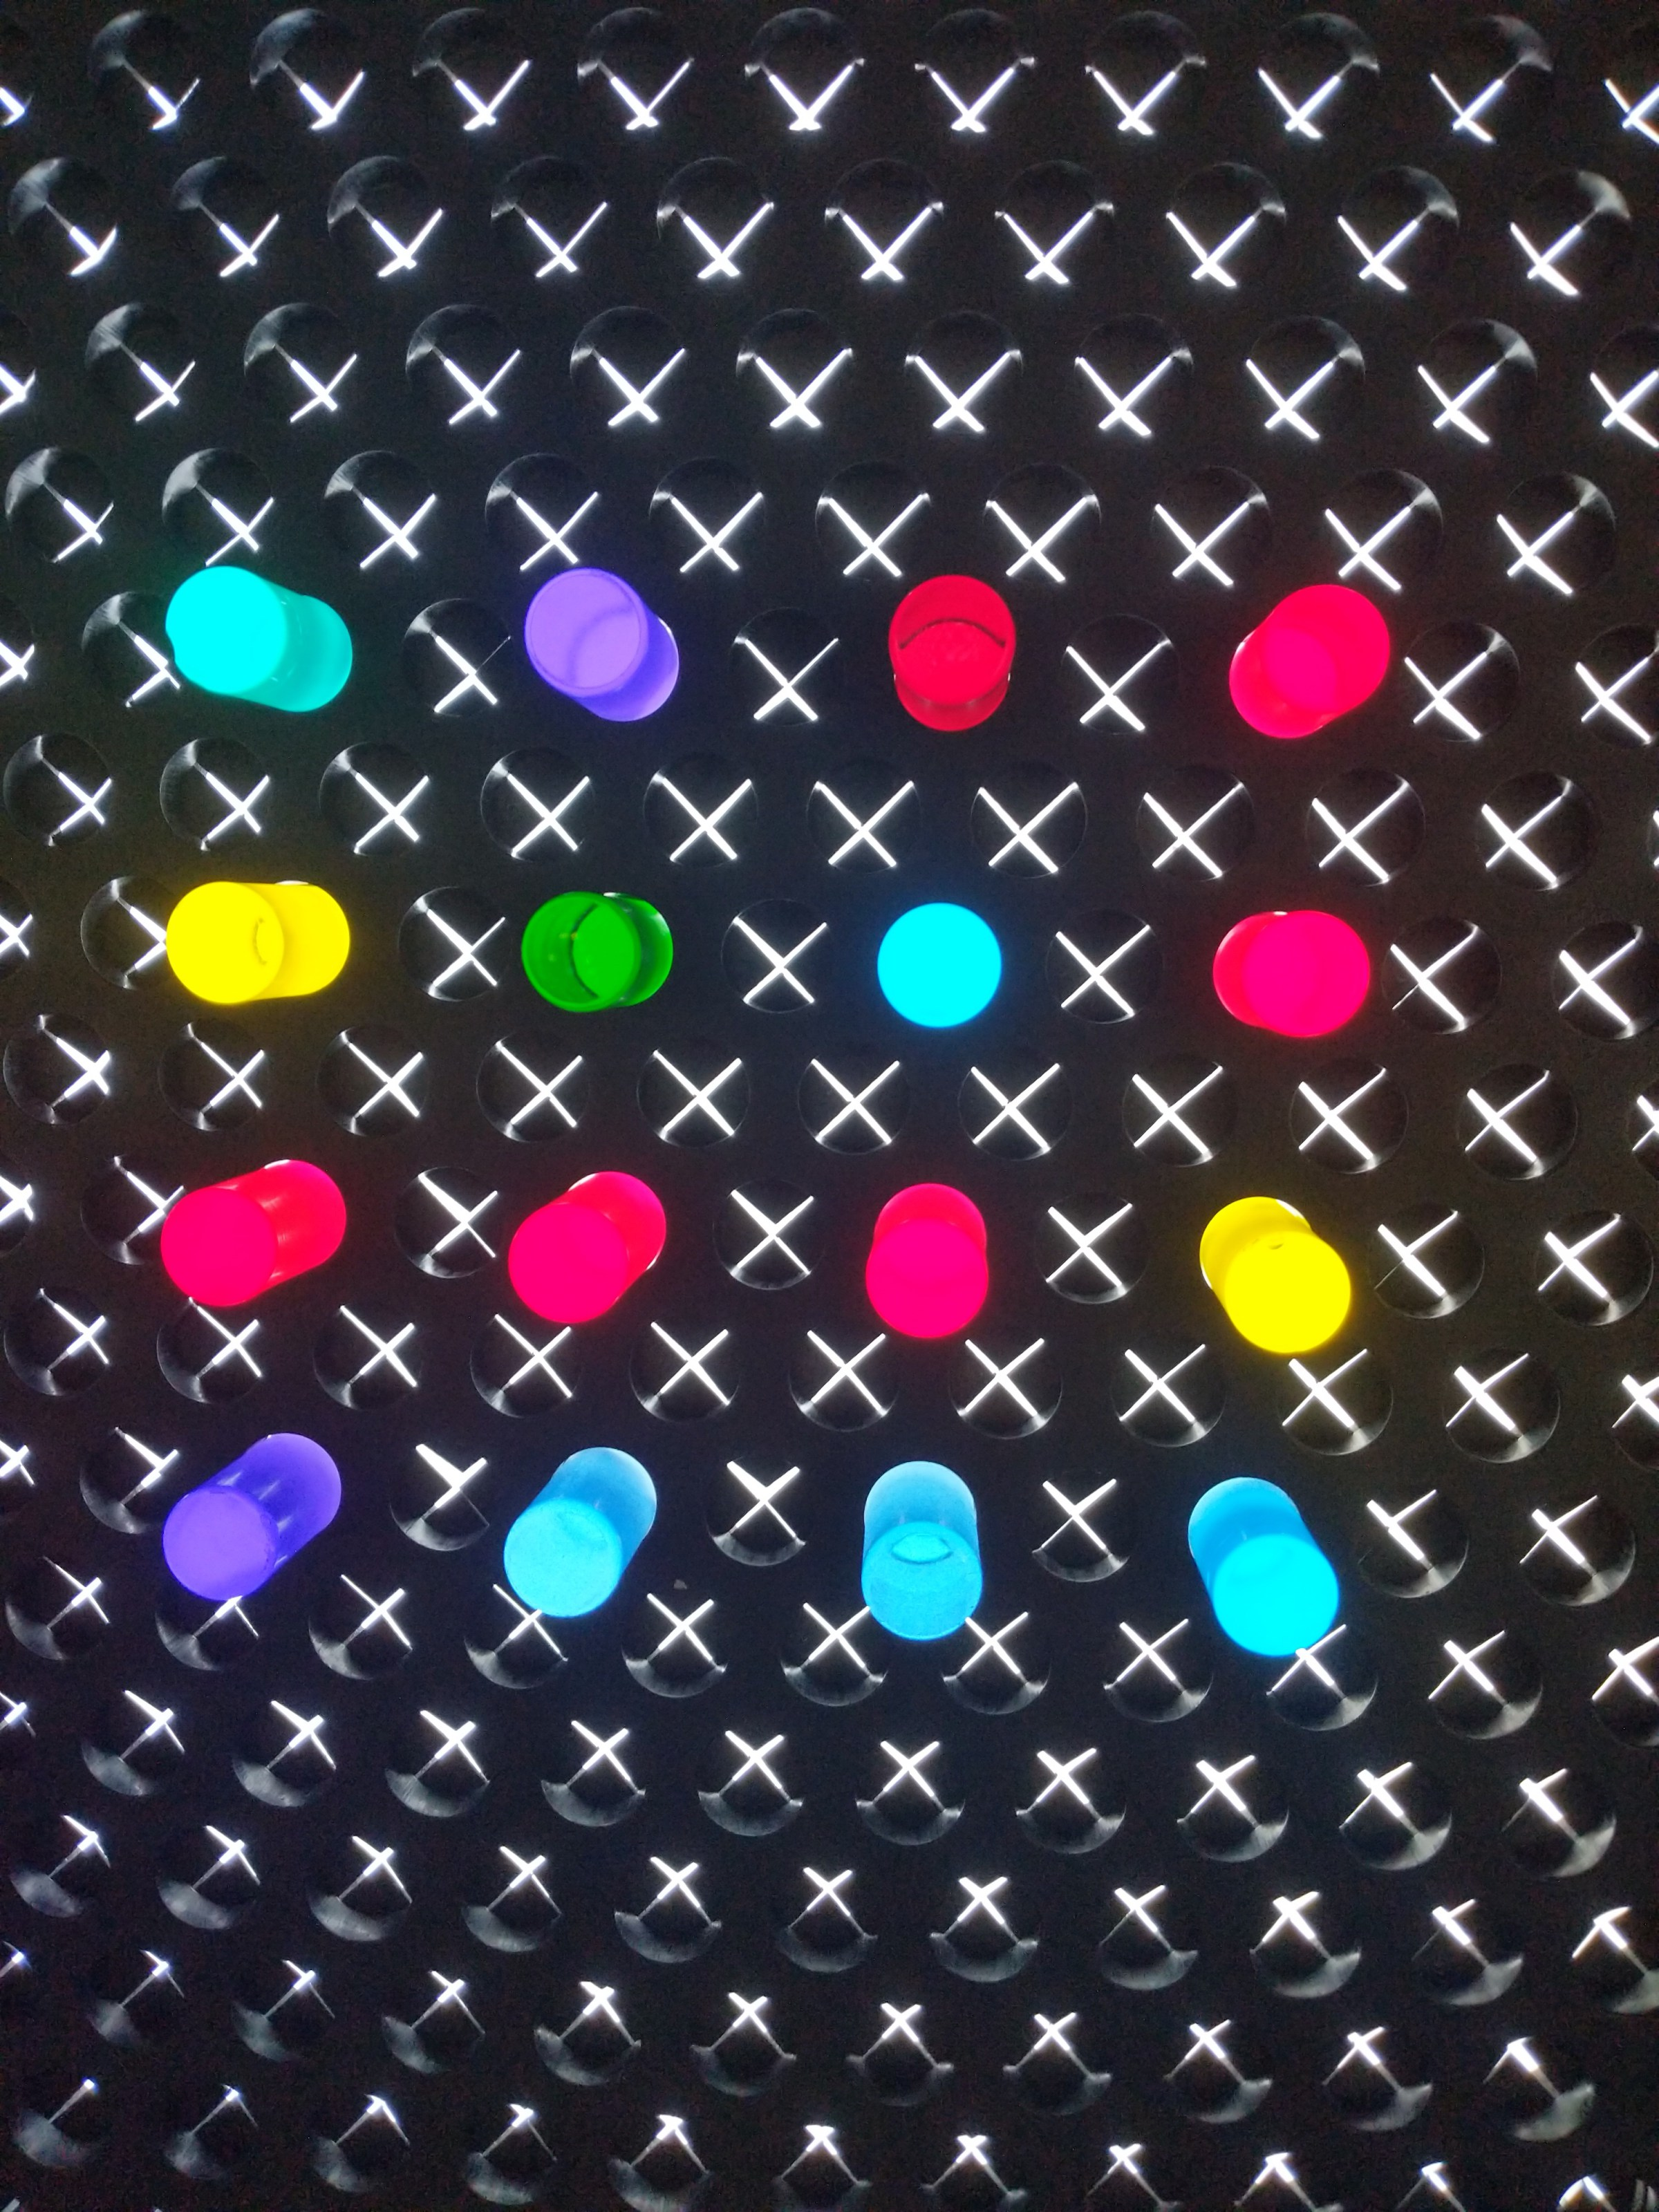 Image of an activity with a black background, lights and what appears to be colorful, lit pegs.